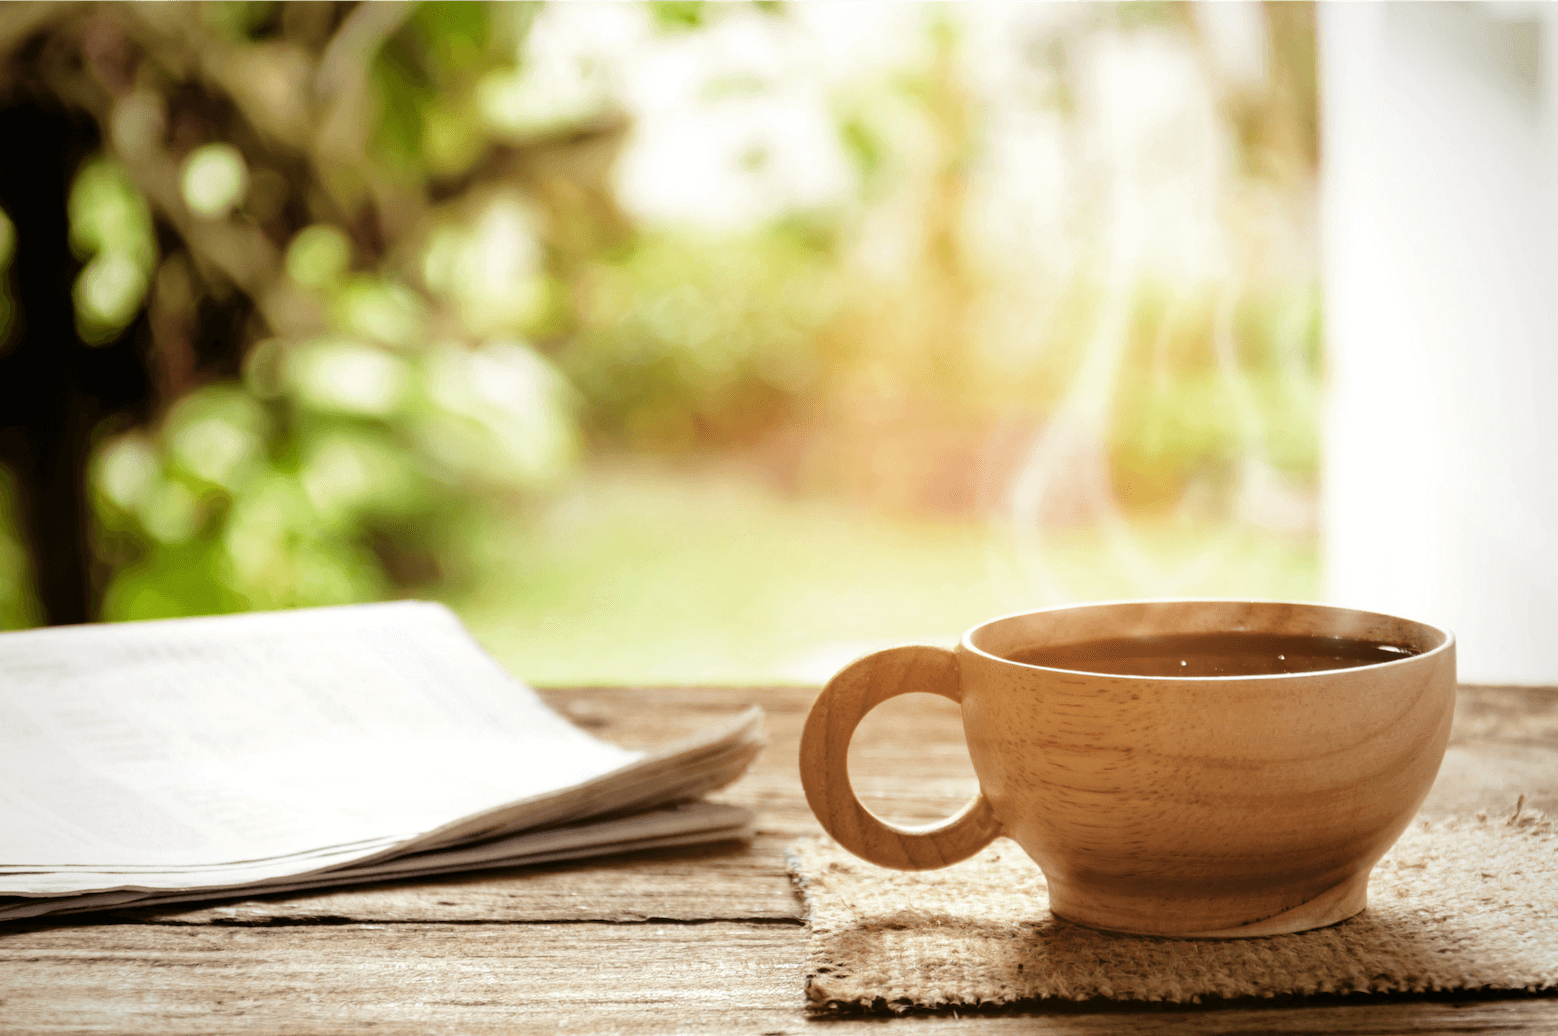 Warm tea while reading newsletters